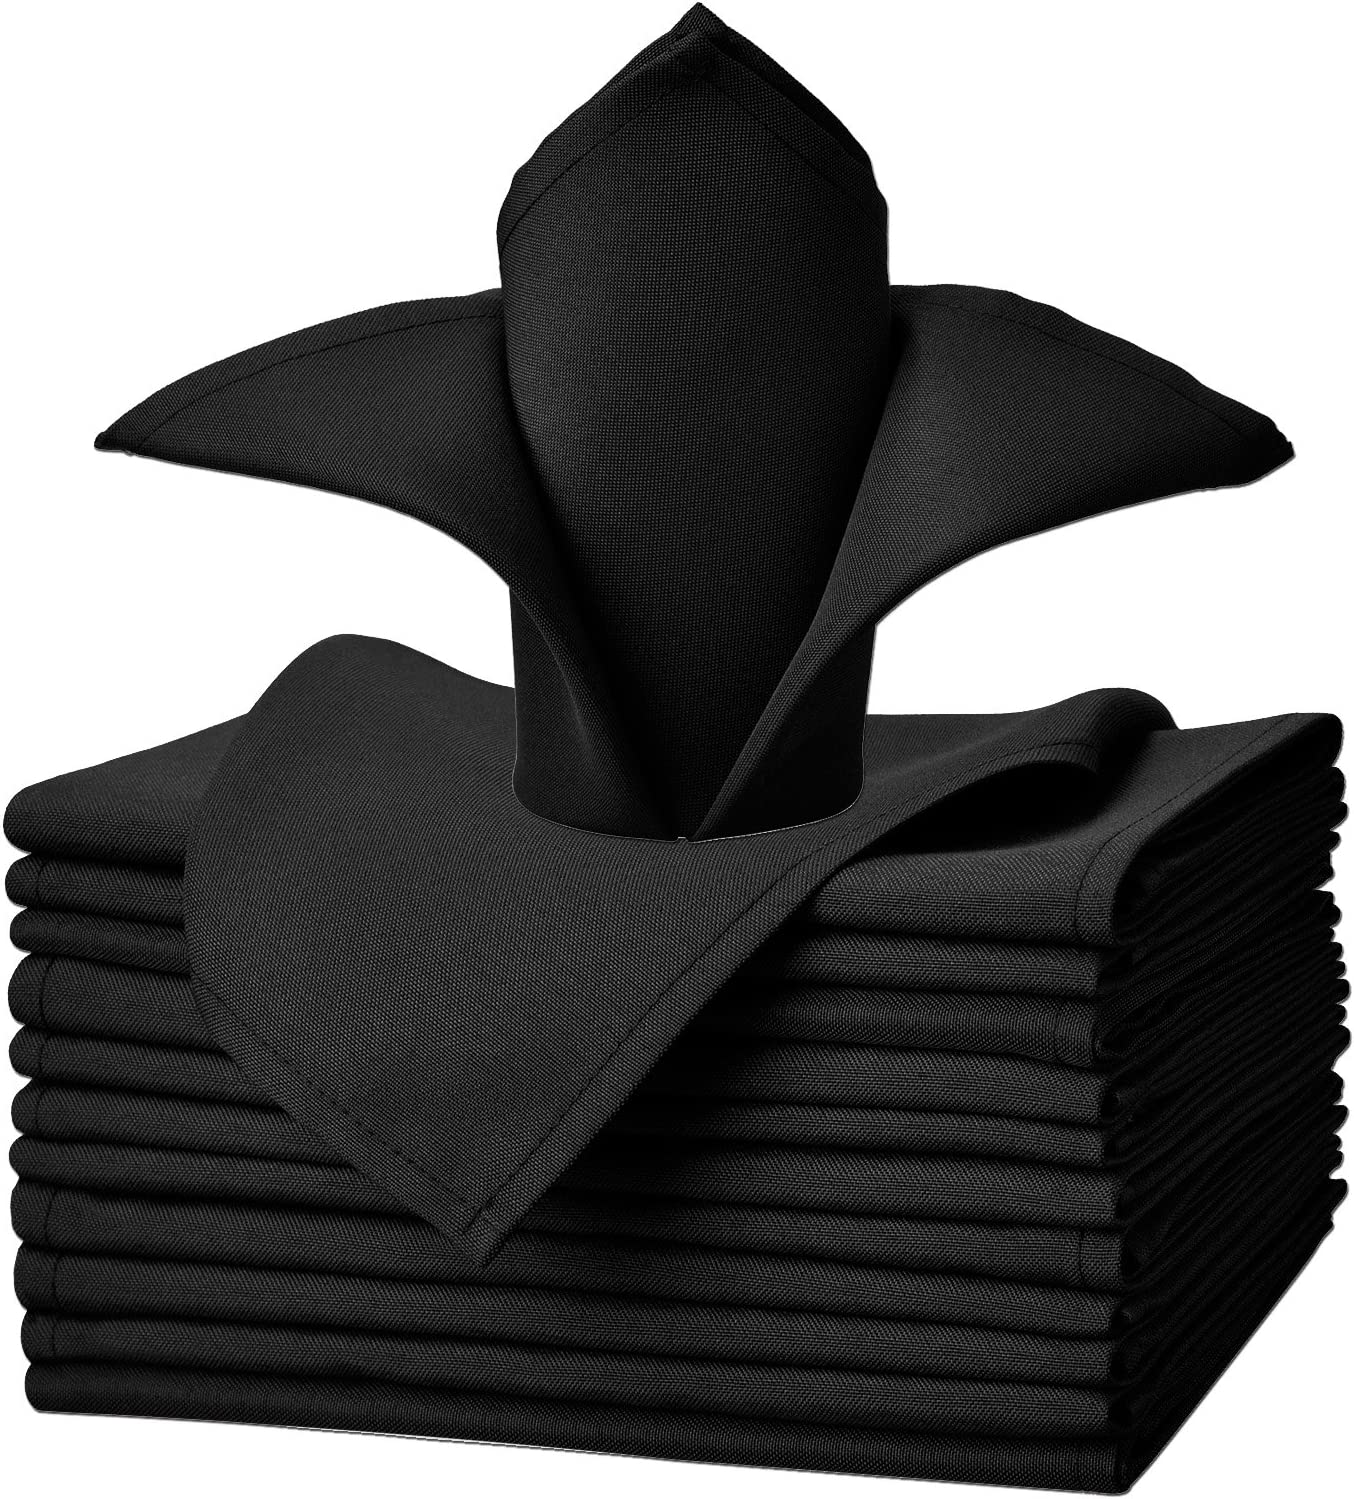 VEEYOO Cloth Napkins Set of 12 Pieces Solid Polyester Napkins Soft Fabric Washable and Reusable Dinner Napkin for Banquet Wedding Restaurant (Black, 20x20 inch)